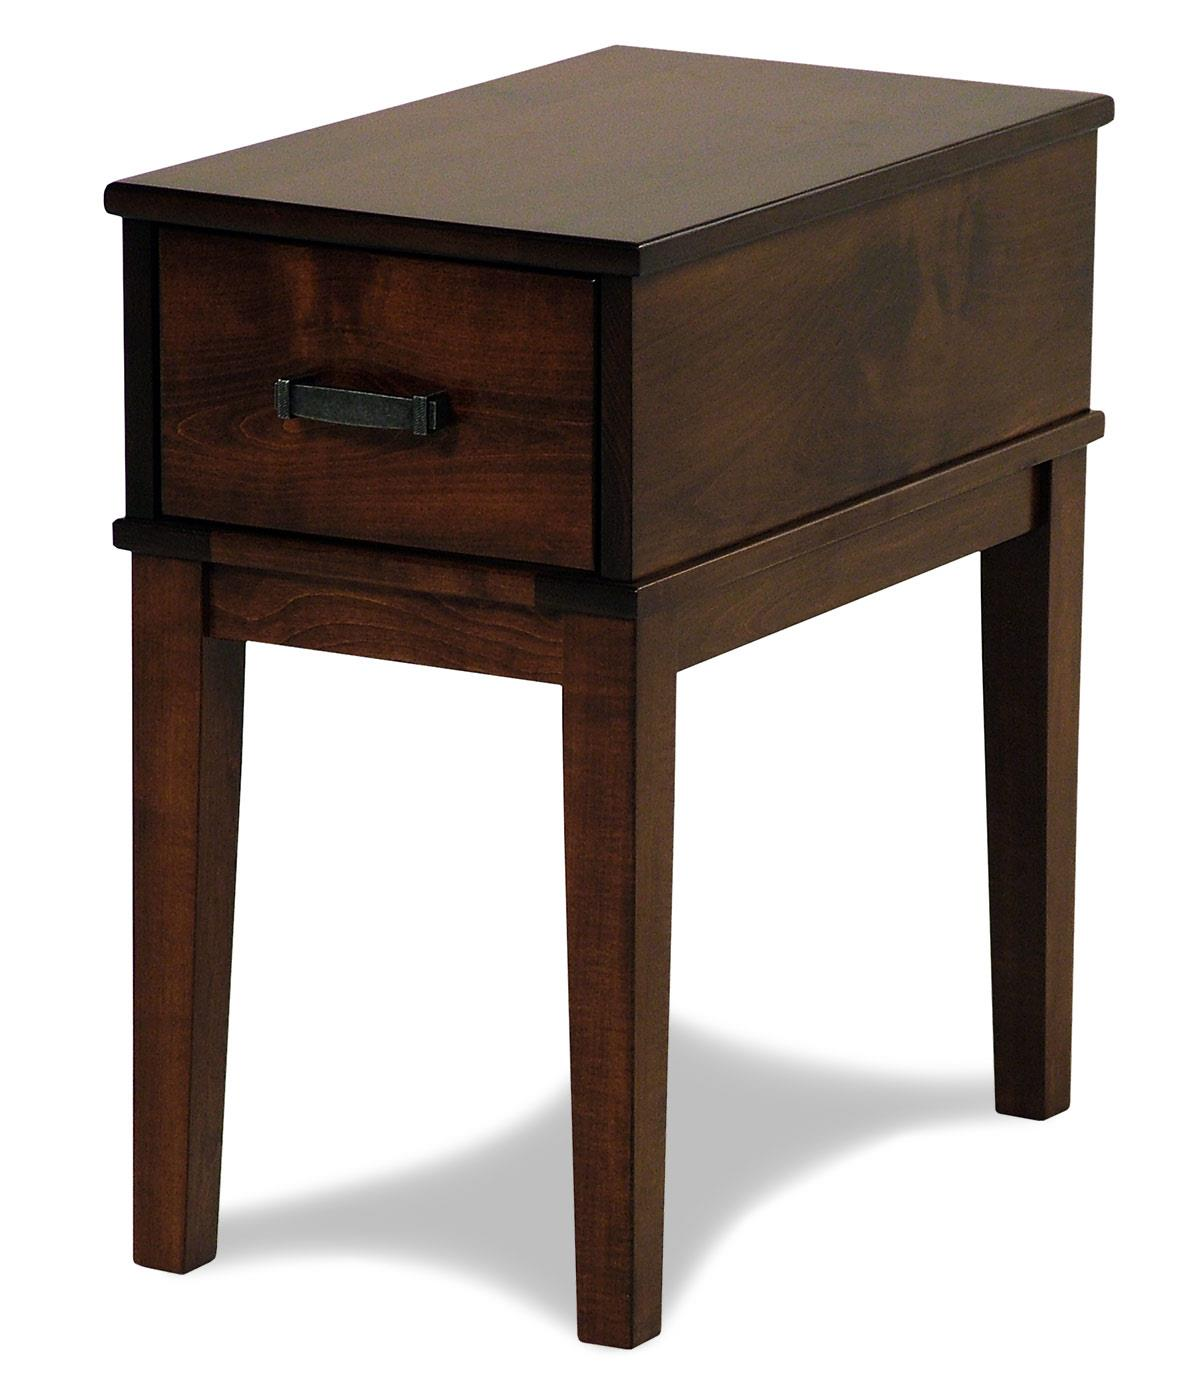 Y & T Woodcraft Asbury Amish Built Maple Chairside Table - Item Number: 230-MAP117